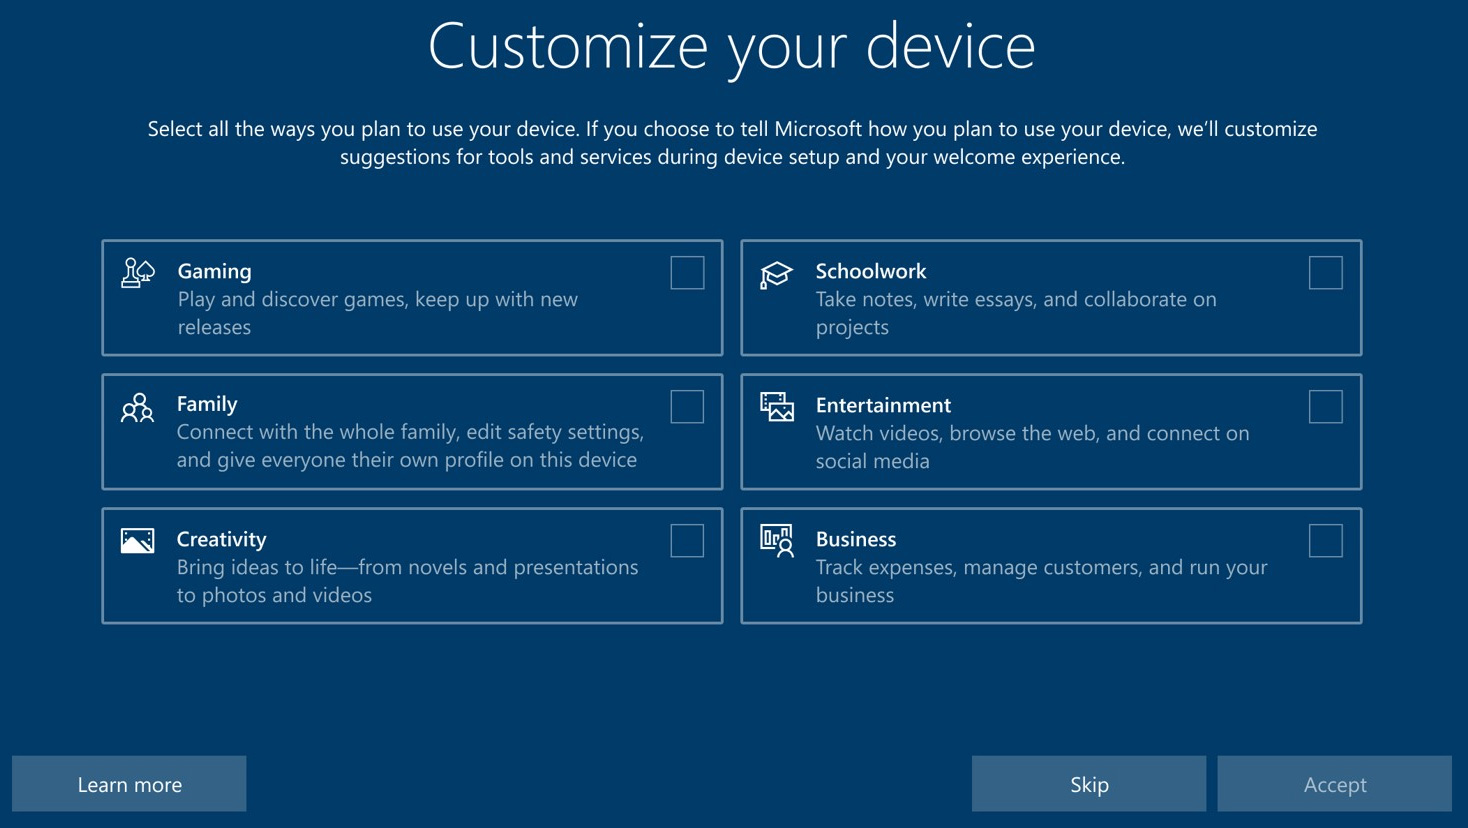 Microsoft is testing a Windows 10 setup screen with 'gaming' as an option